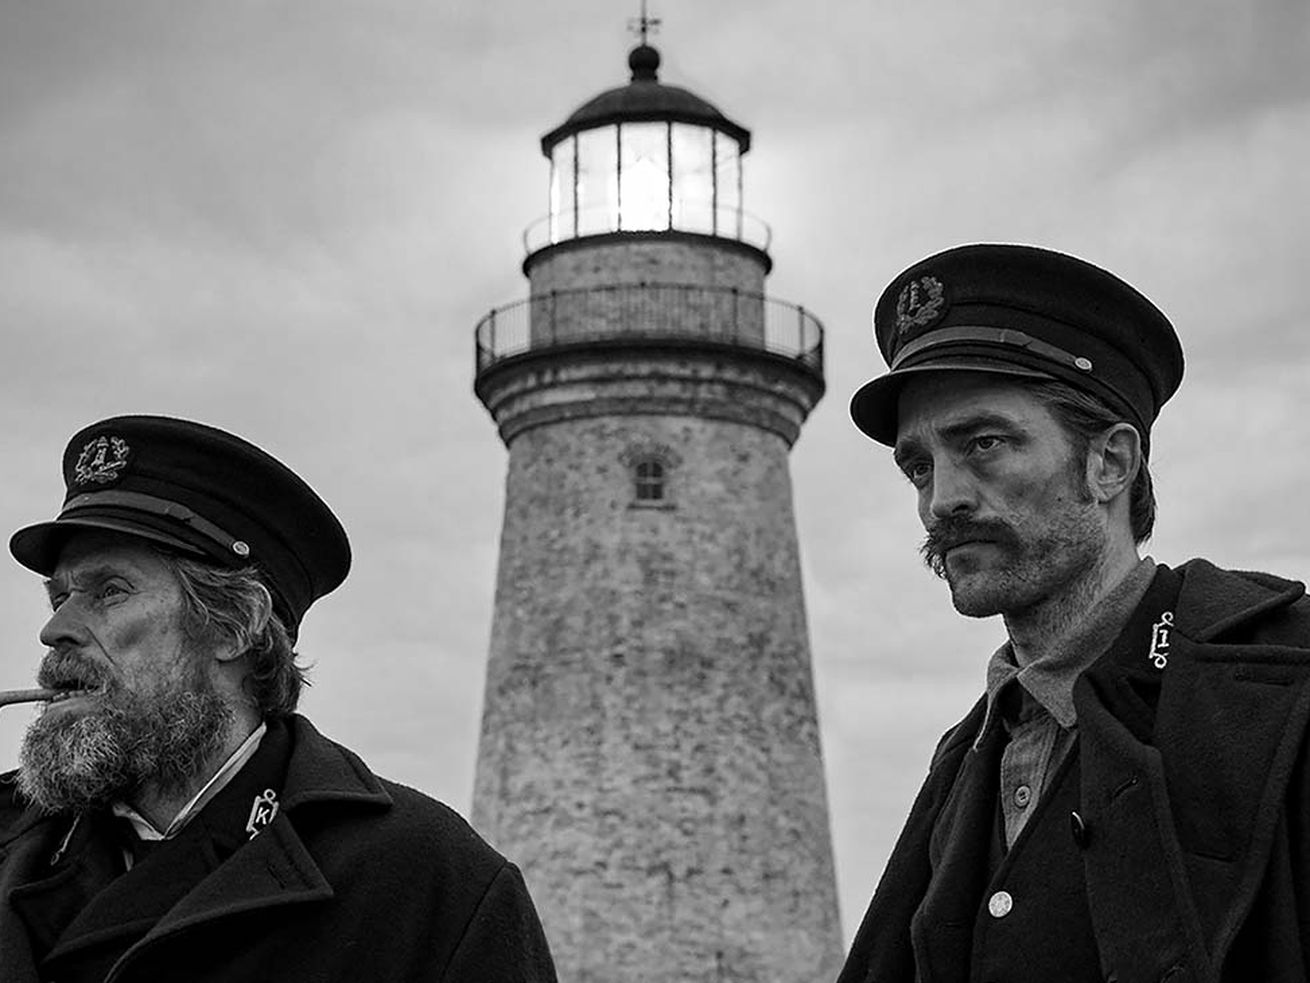 The Lighthouse, starring Robert Pattinson and Willem Dafoe, is easily one of the wildest films of the year - The Reports